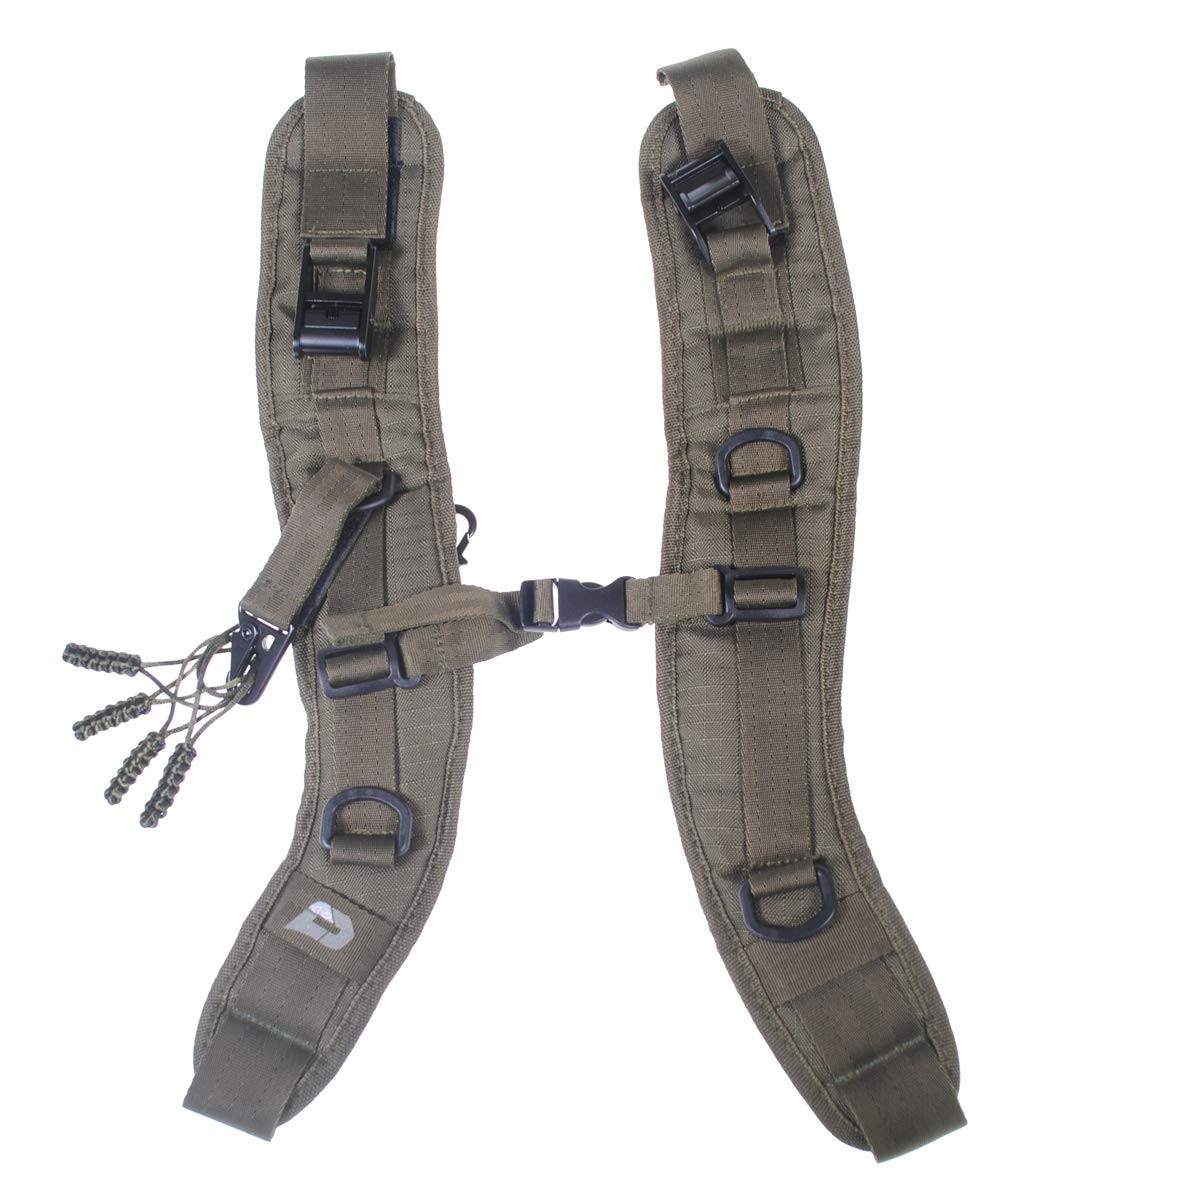 PUSH Paintball Backpack and Div1 Gear Bag Strap Kit (Olive)